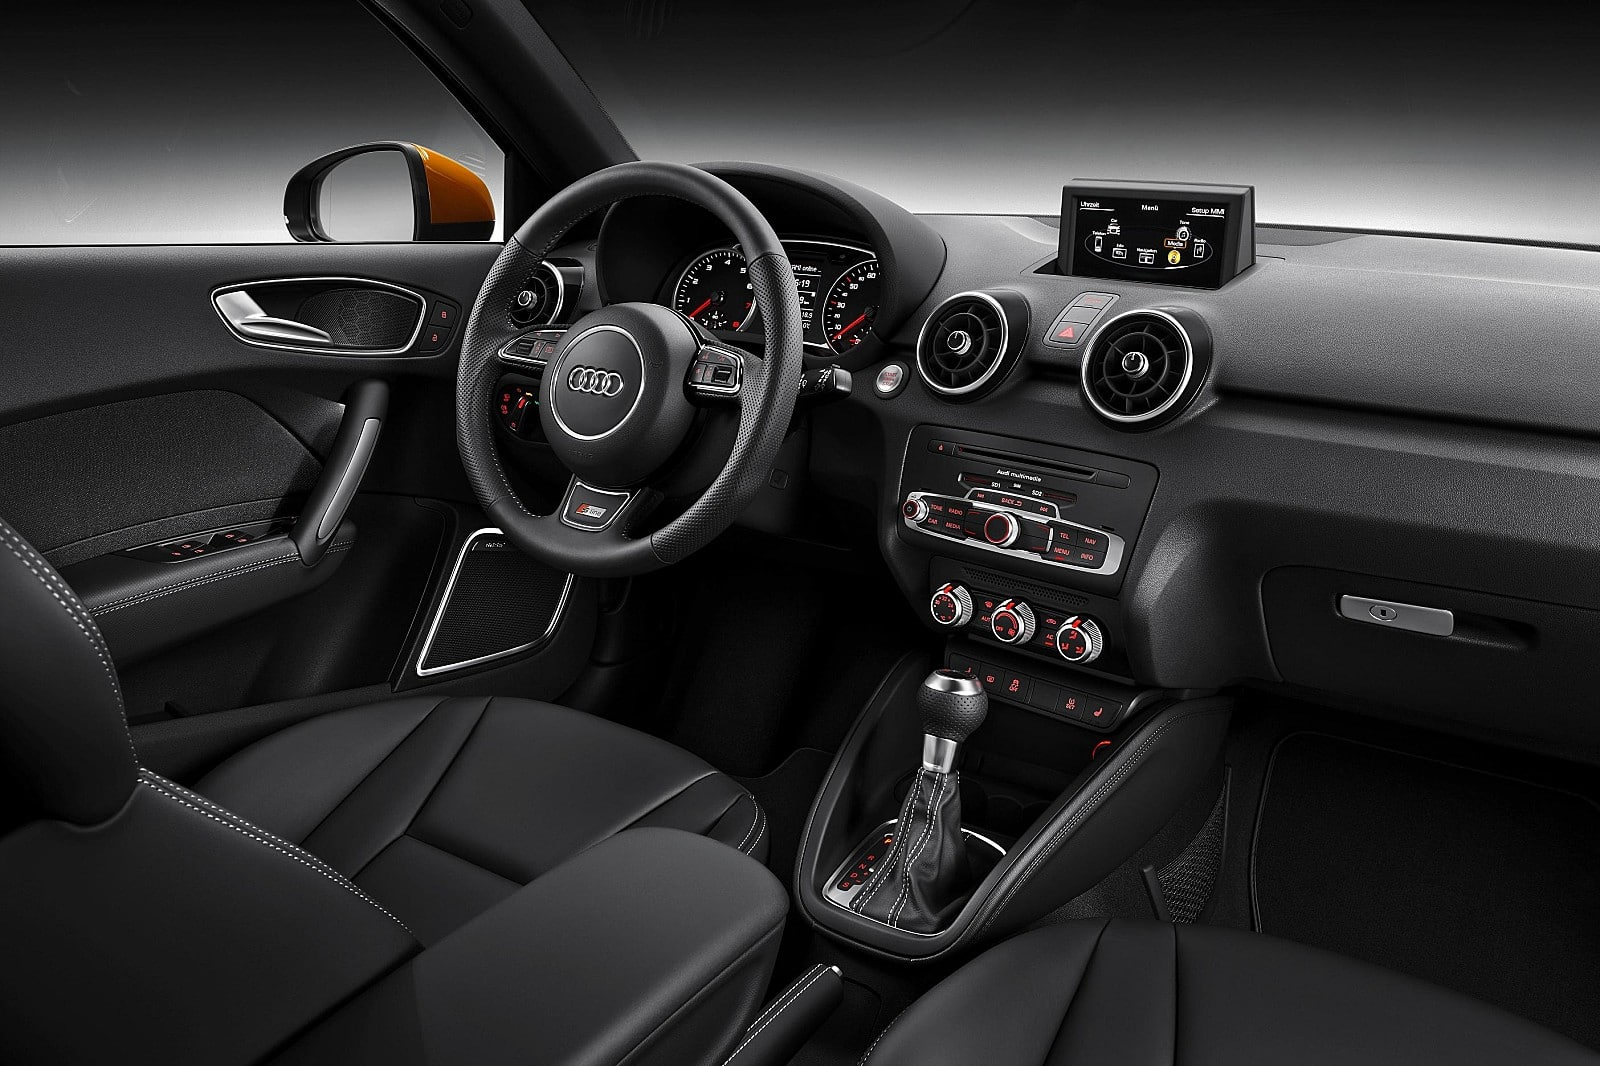 essai audi a1 sportback 1 6 tdi 90 s tronic ambition luxe. Black Bedroom Furniture Sets. Home Design Ideas